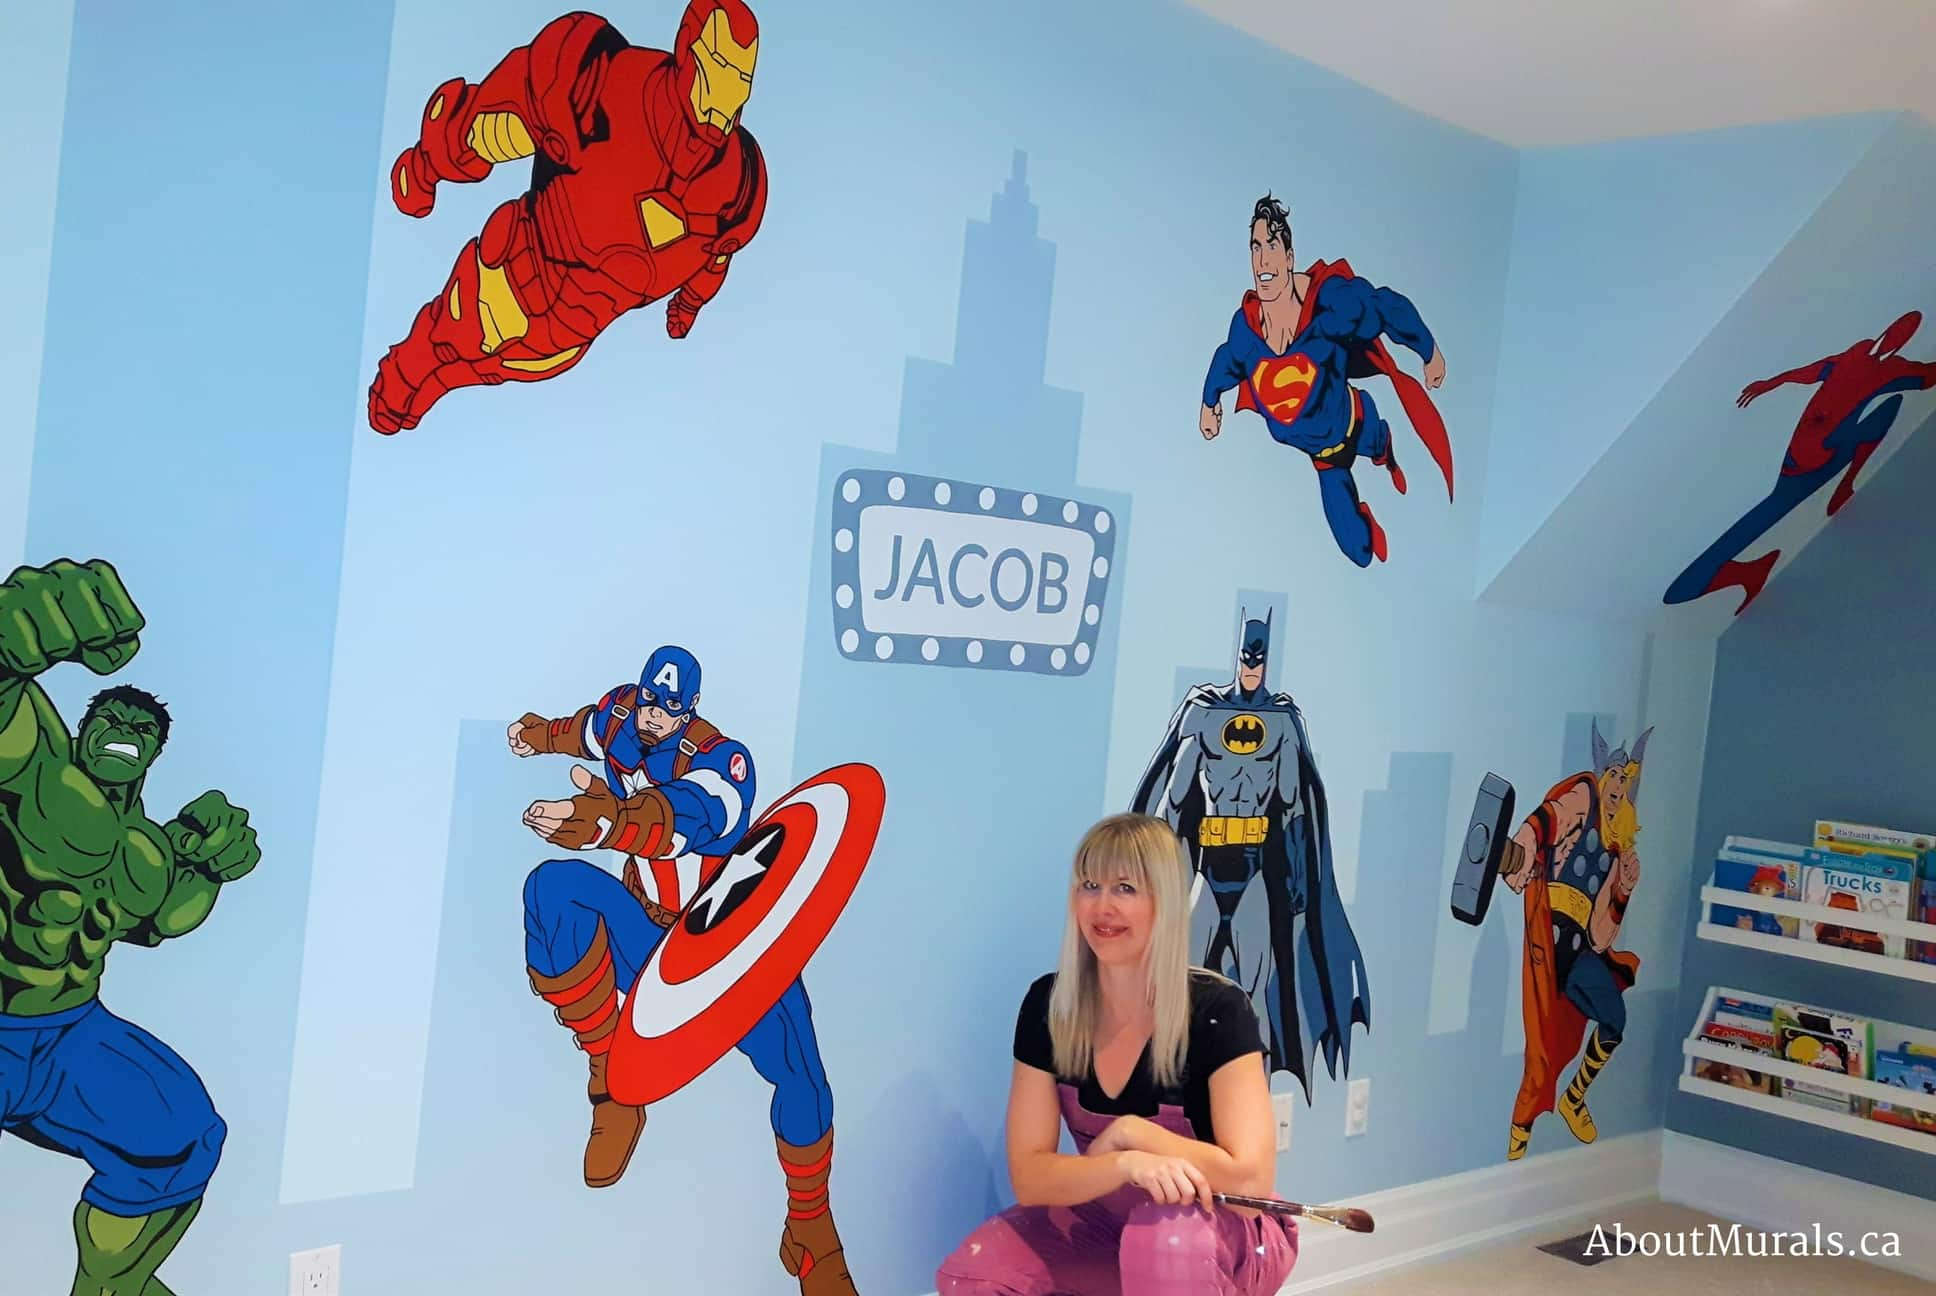 Mural painter Adrienne Scanlan sits next to a kids wall mural she painted featuring the Hulk, Captain America, Batman, Superman, Spiderman, Thor and Captain America